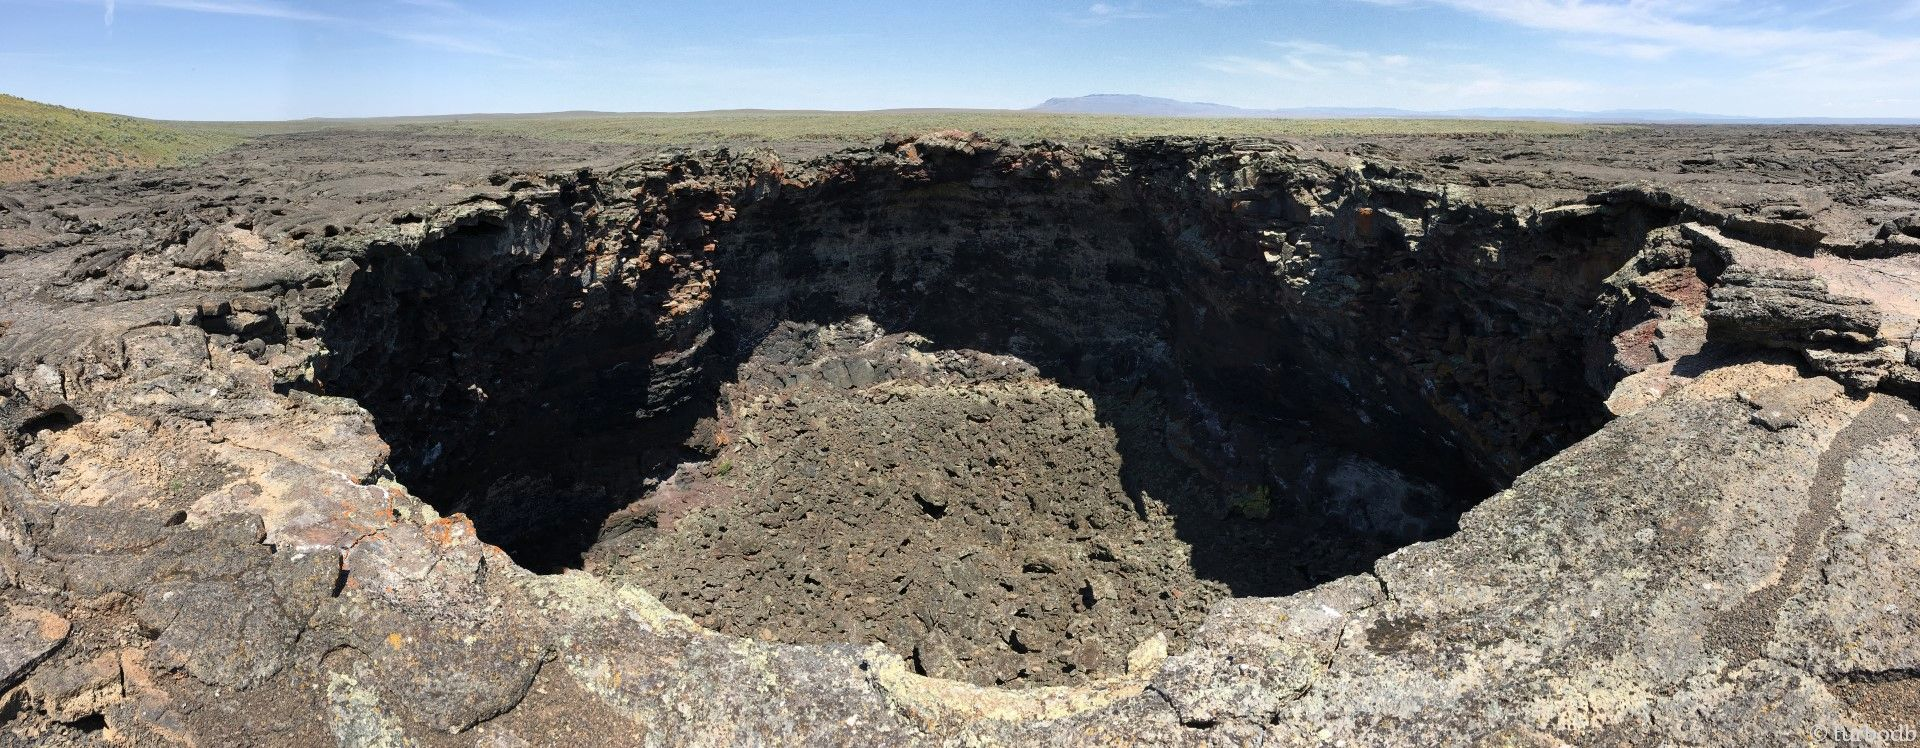 A trip to the Owyhee Canyonlands Part 2 - Owyhee, Jordan Craters